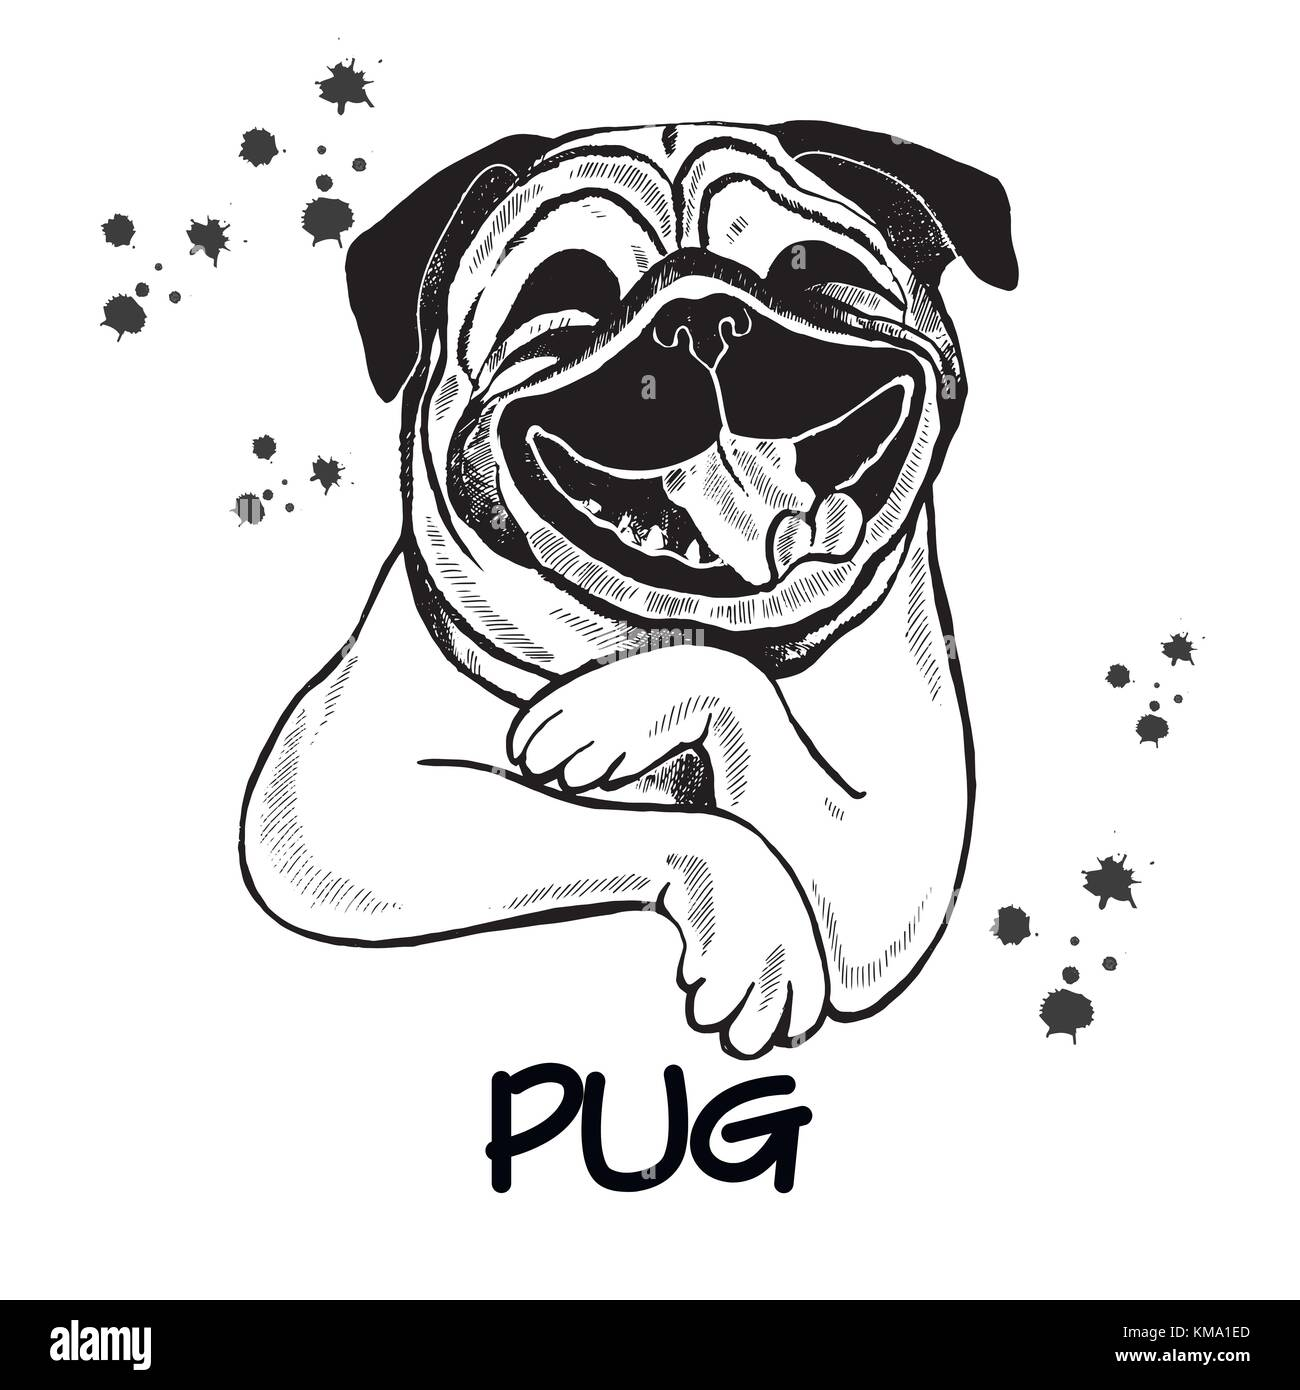 hand drawn sketch style pug vector illustration isolated on white stock vector image art alamy https www alamy com stock image hand drawn sketch style pug vector illustration isolated on white 167407141 html